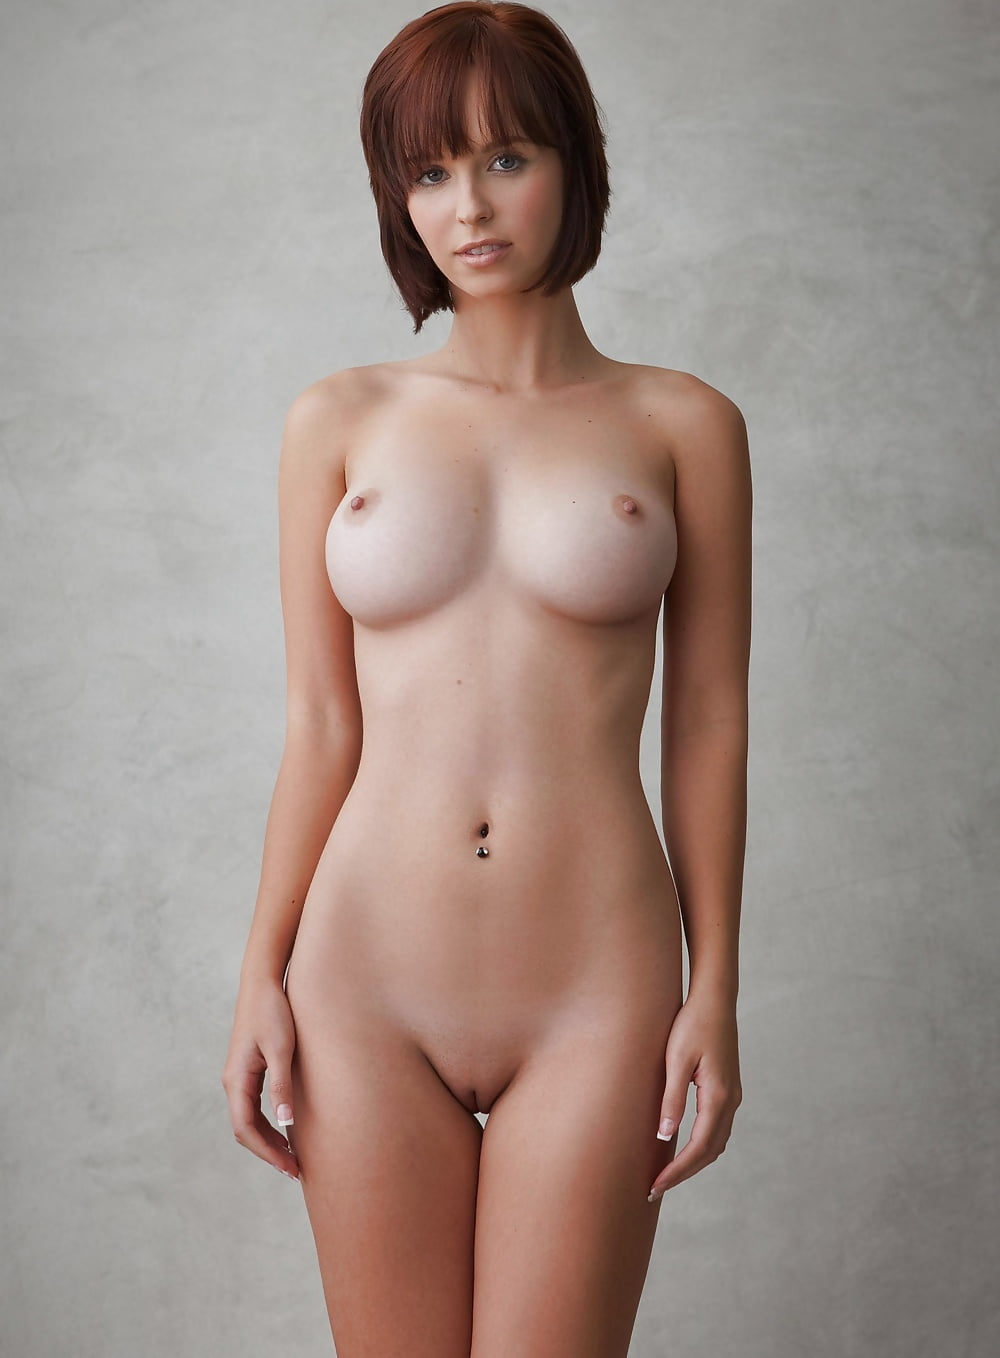 Sexy proud of her naked body